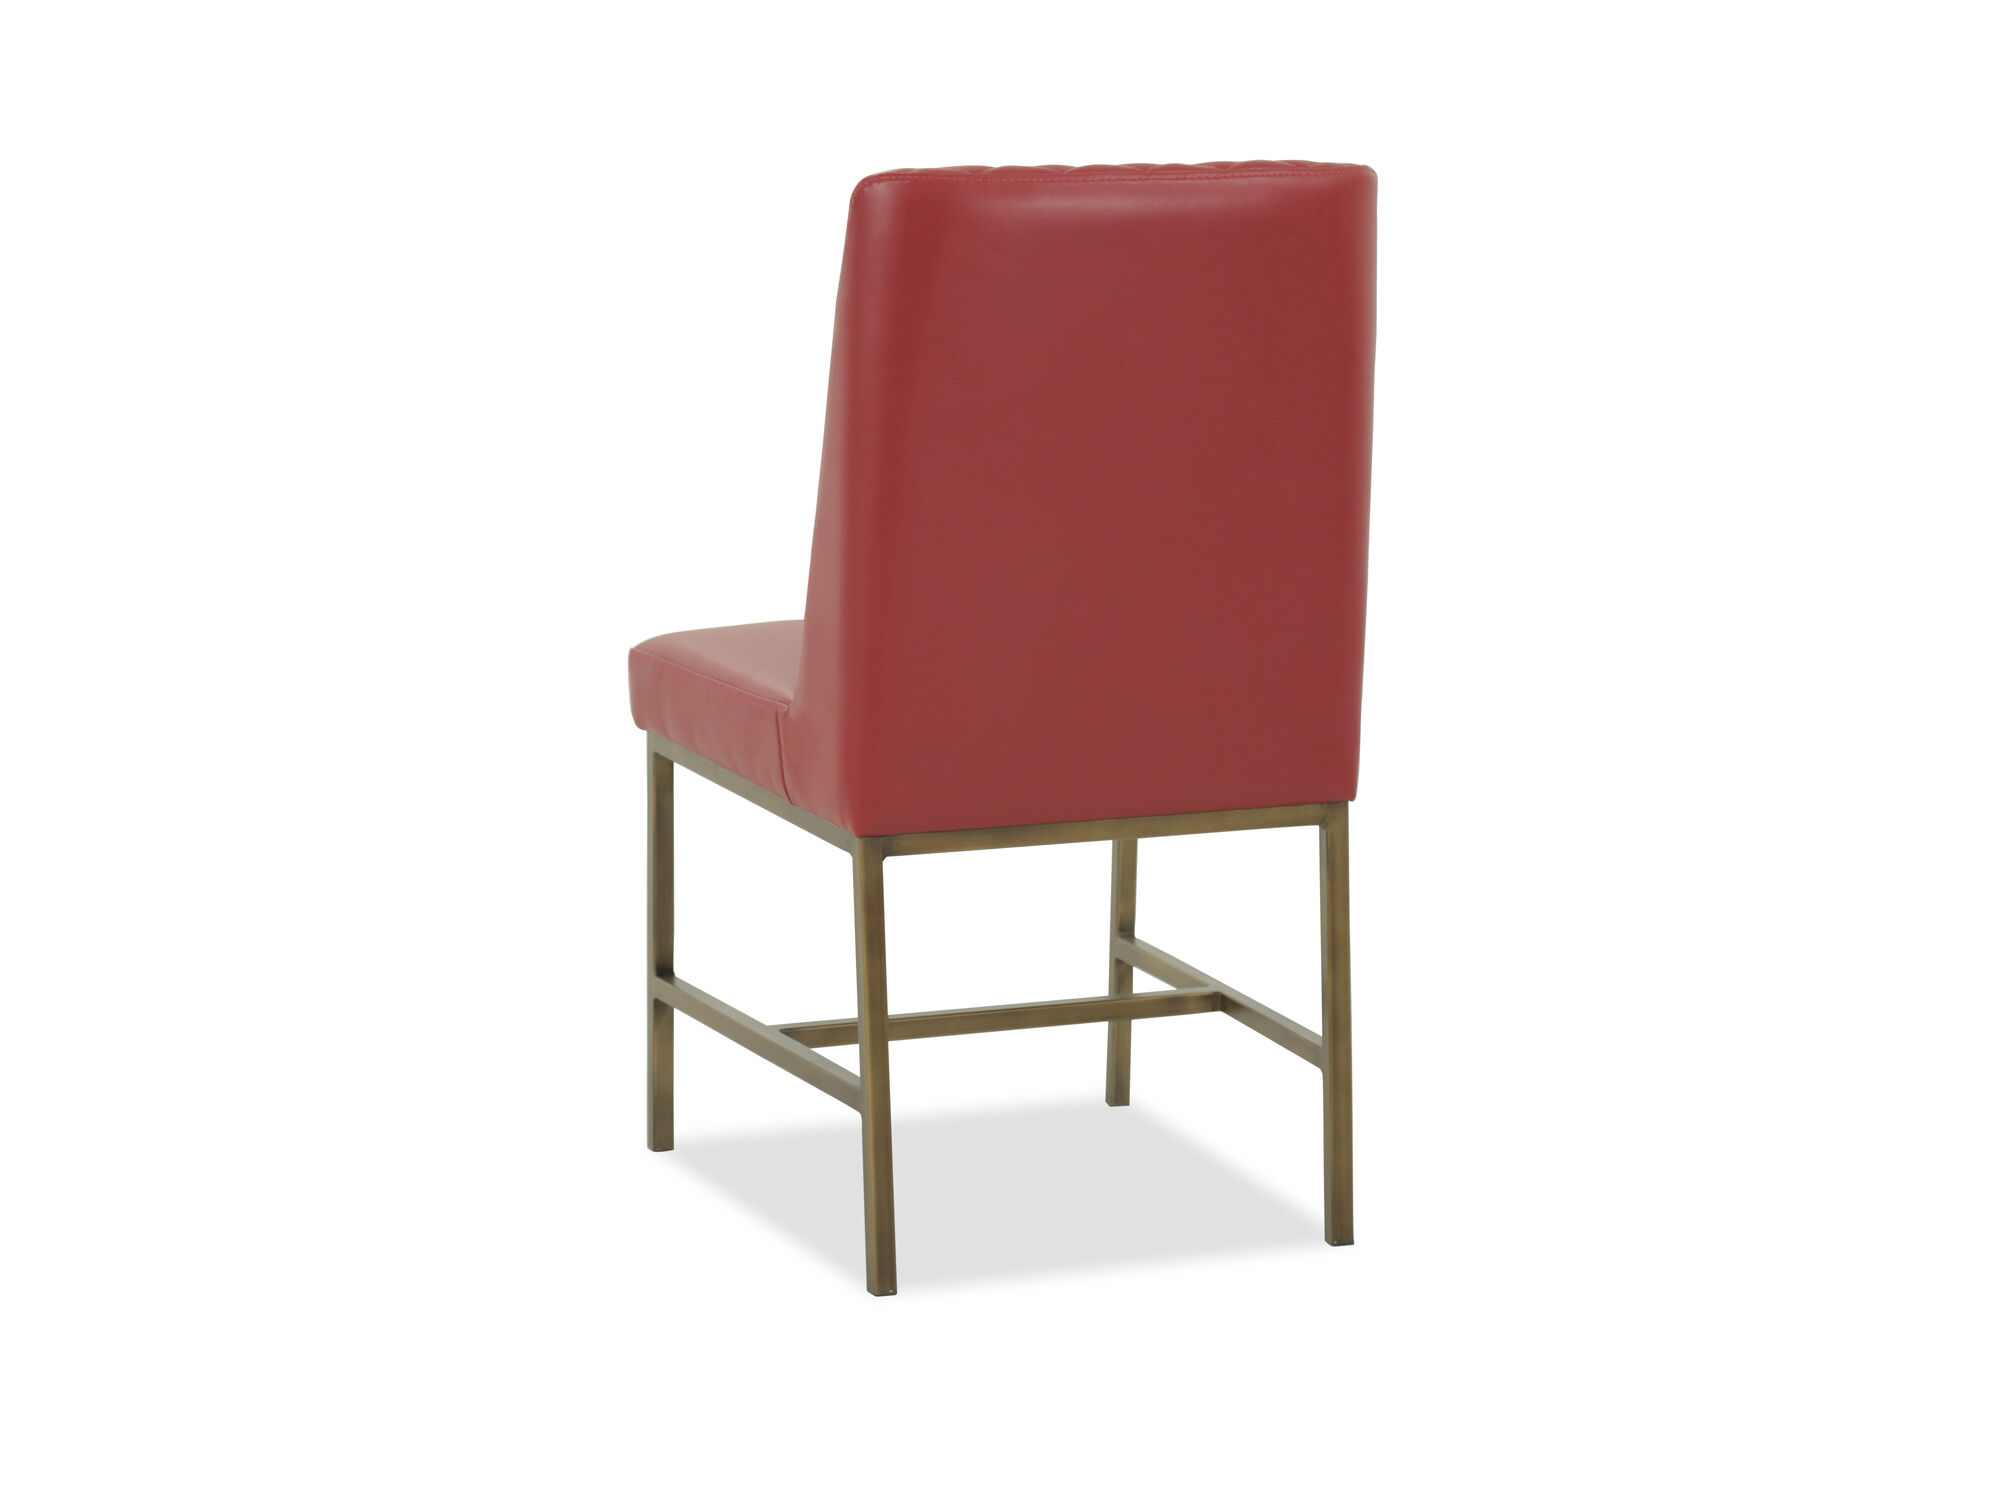 red tufted dining chair desk chairs without wheels modern 20 in mathis brothers furniture supported on a durable metal base this casual style displays dazzling tone that gives refreshed look to your space